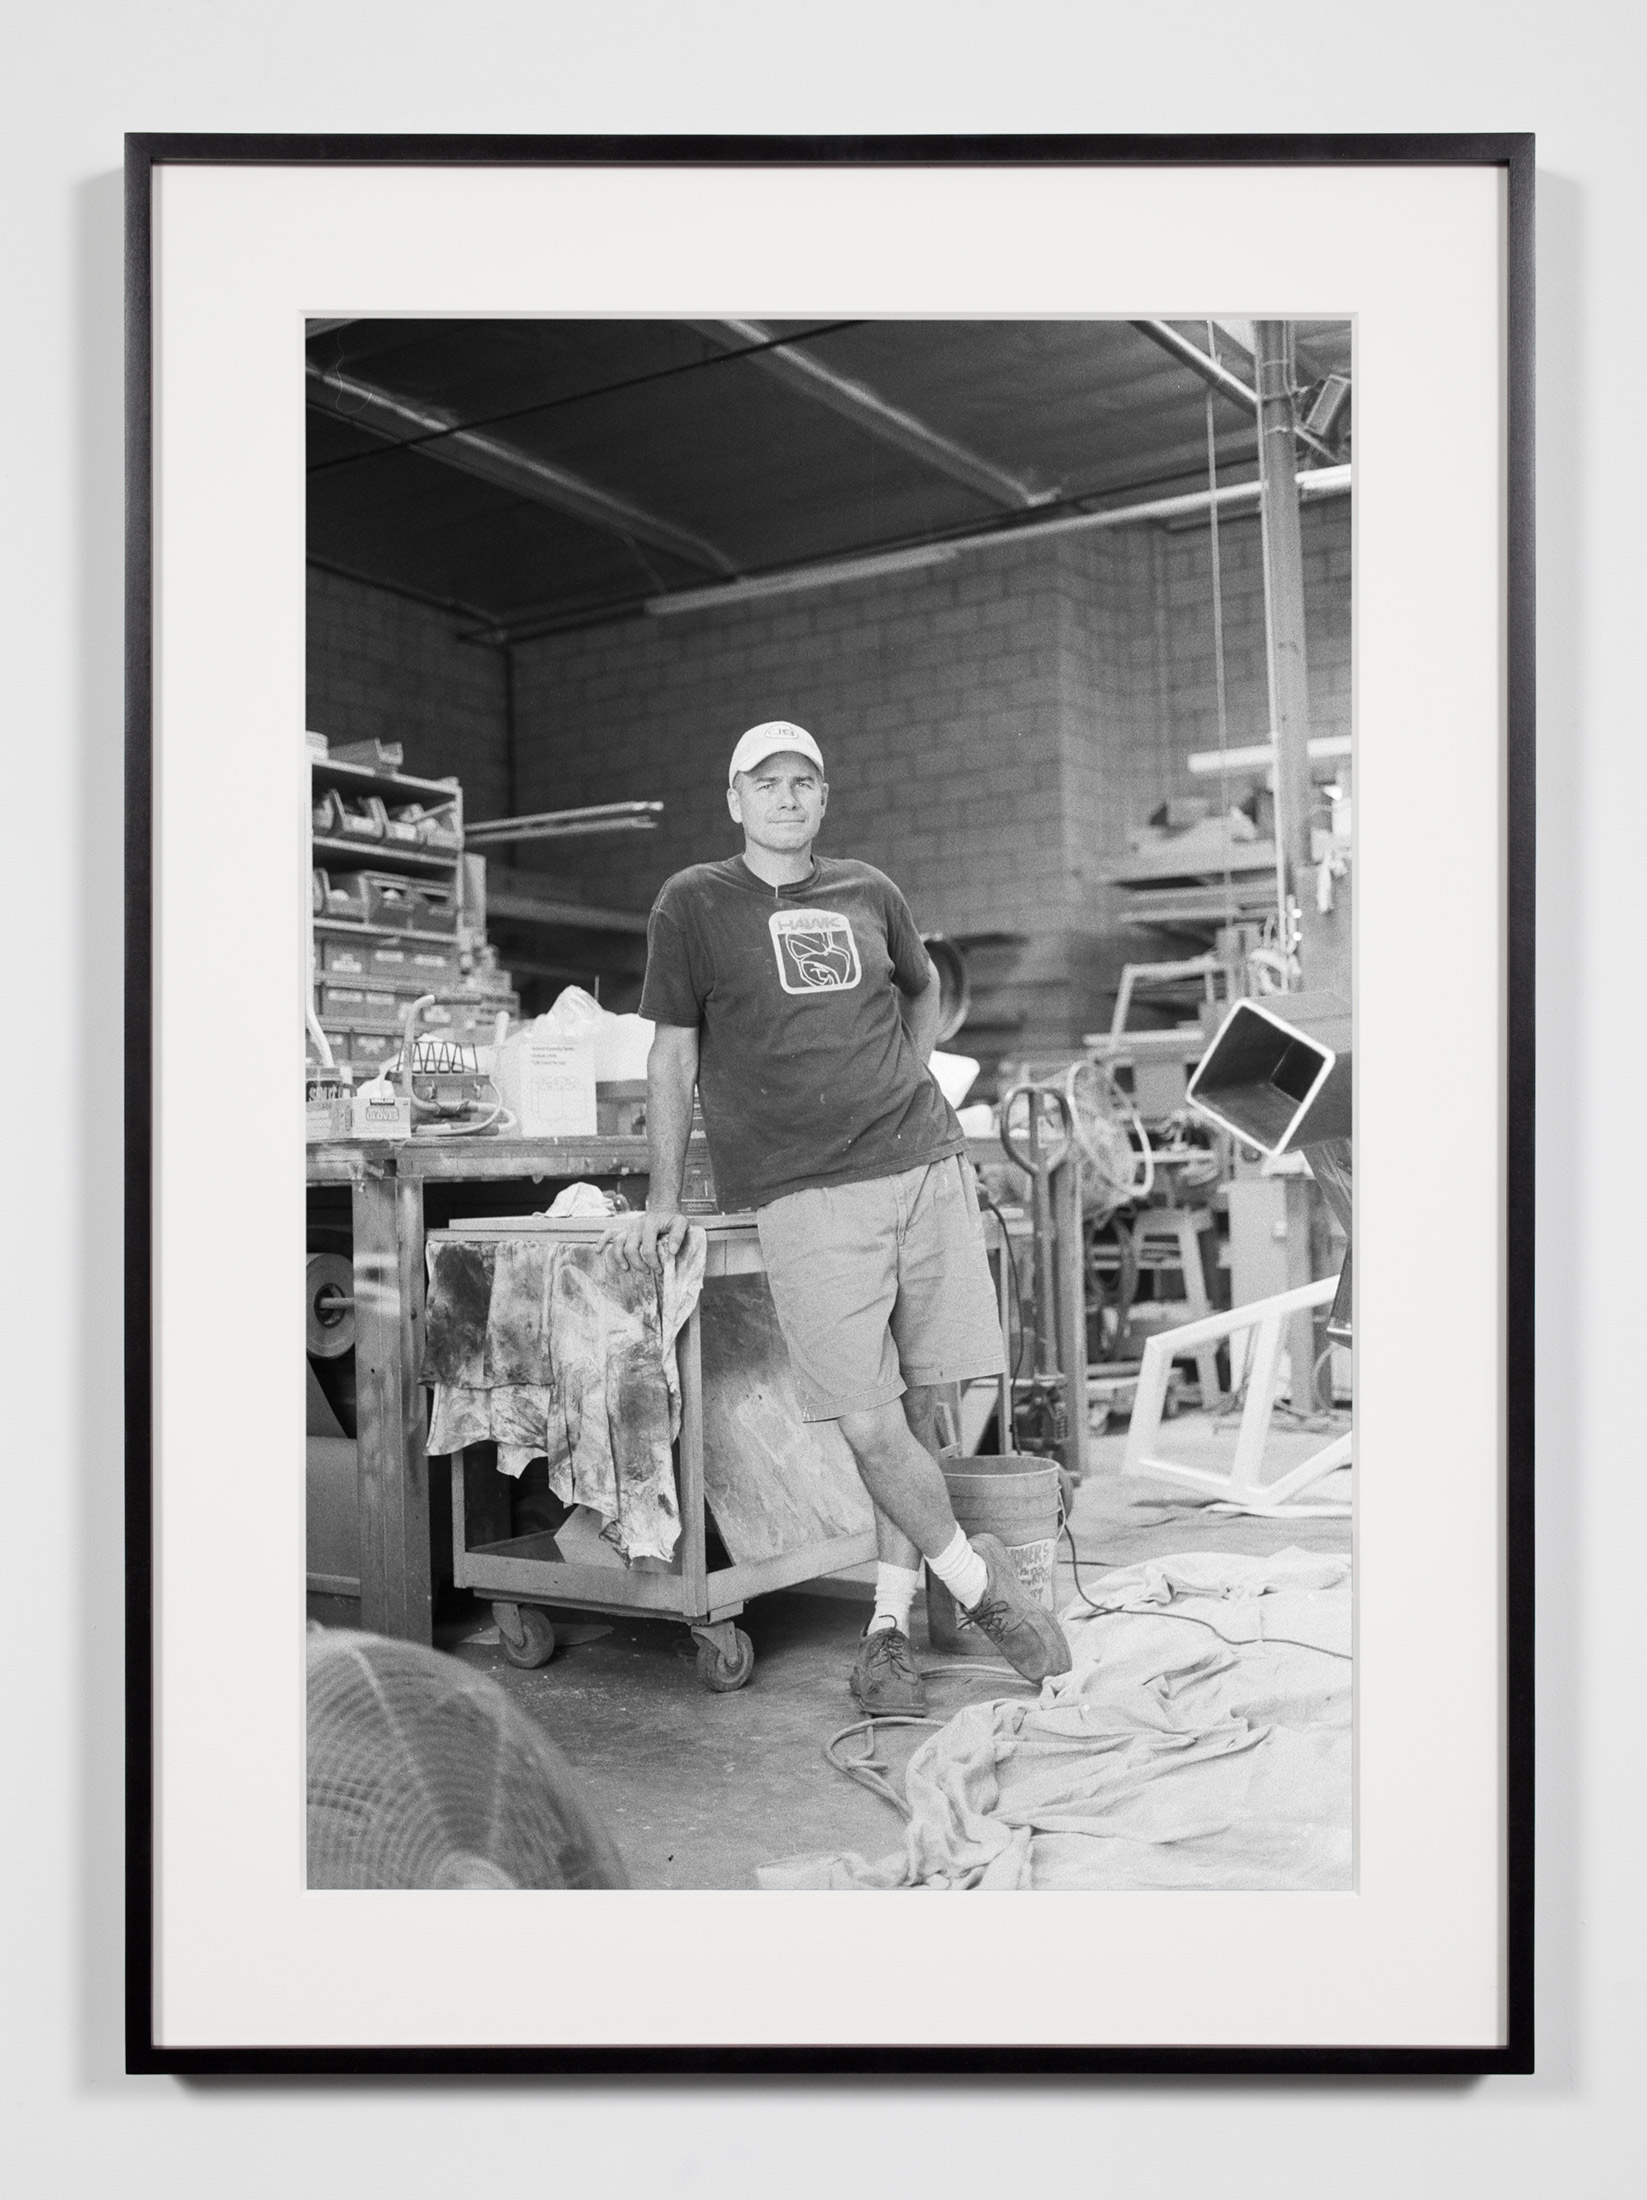 Fabricator, Glendale, California, July 9, 2008    2011   Epson Ultrachrome K3 archival ink jet print on Hahnemühle Photo Rag paper  36 3/8 x 26 3/8 inches   A Diagram of Forces, 2011